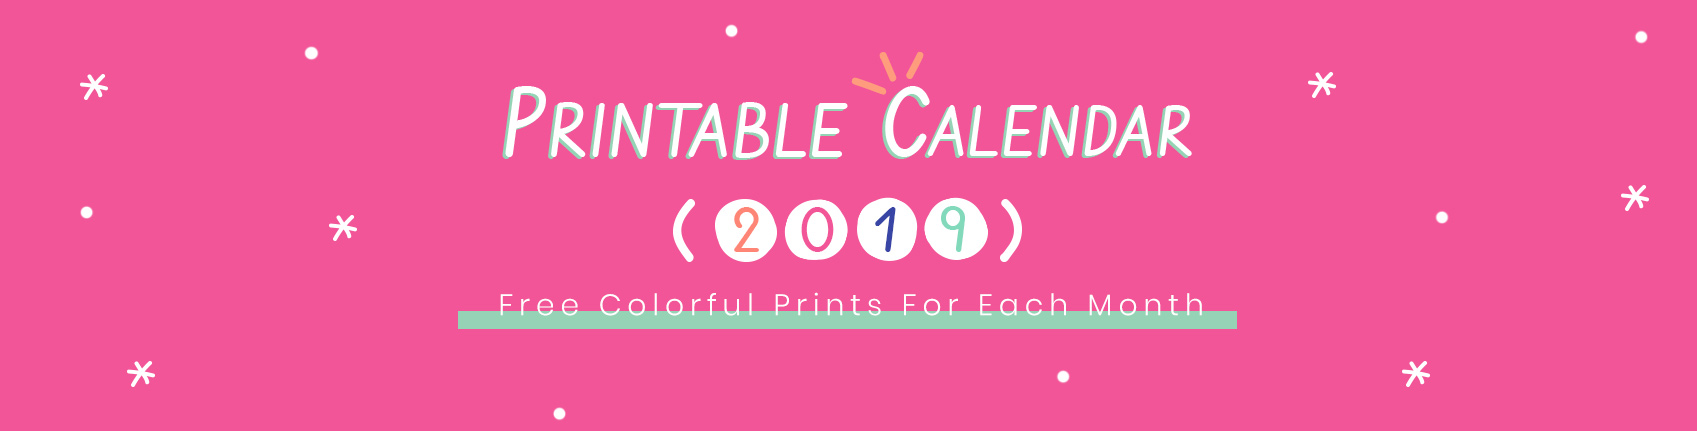 Free Printable Colorful Calendar 2019 | Colorful Zone